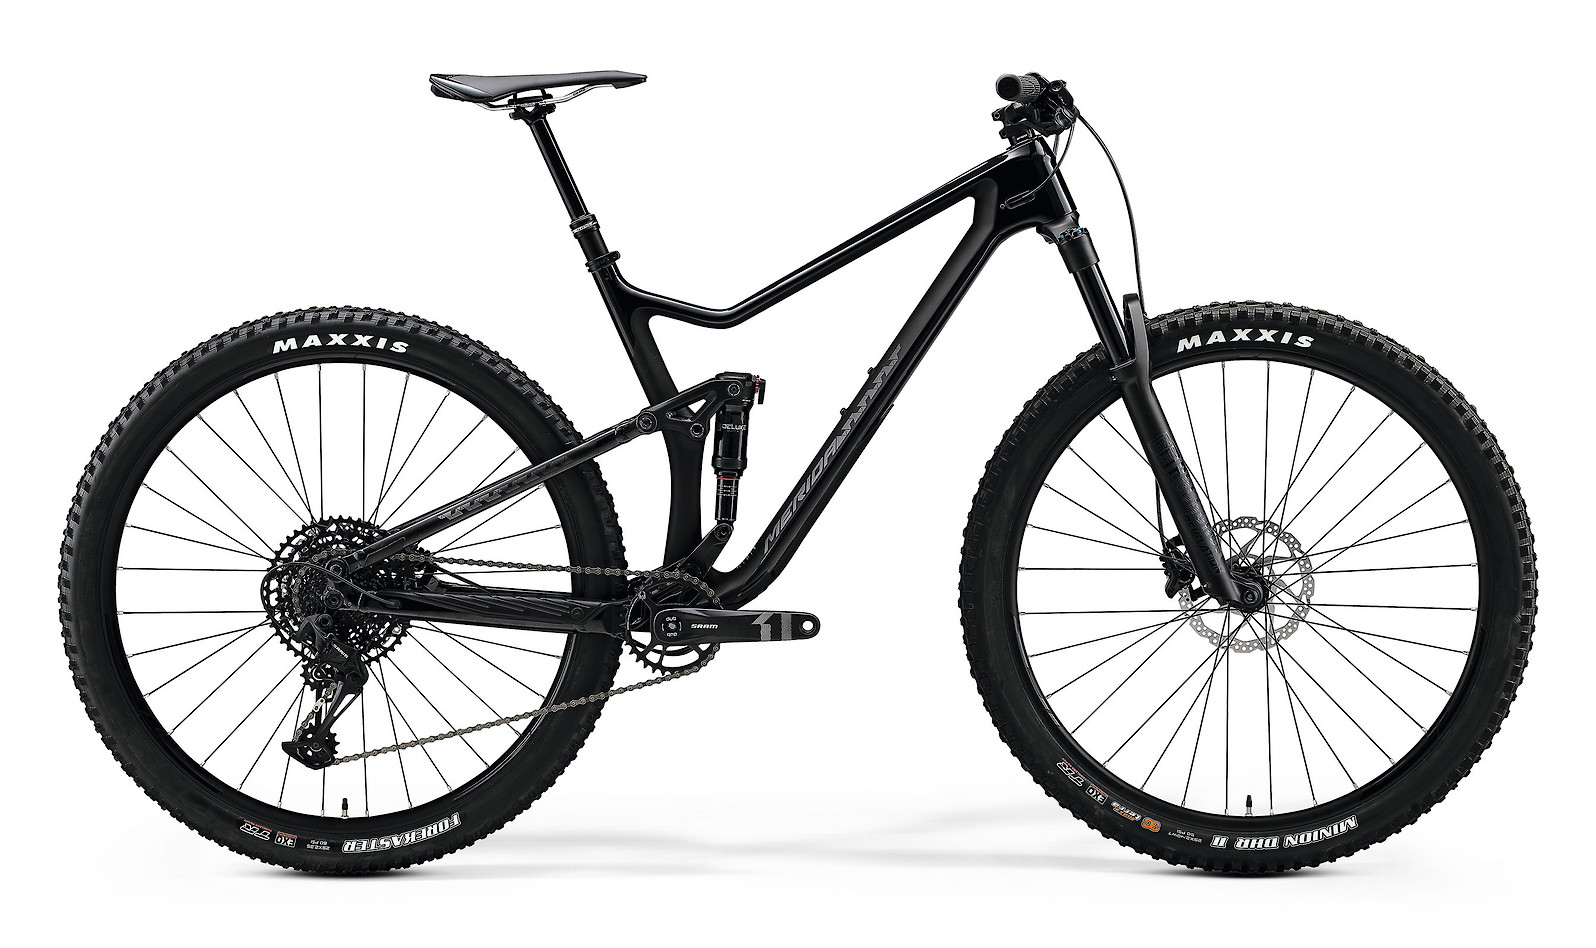 2020 Merida One-Twenty 9. 3000